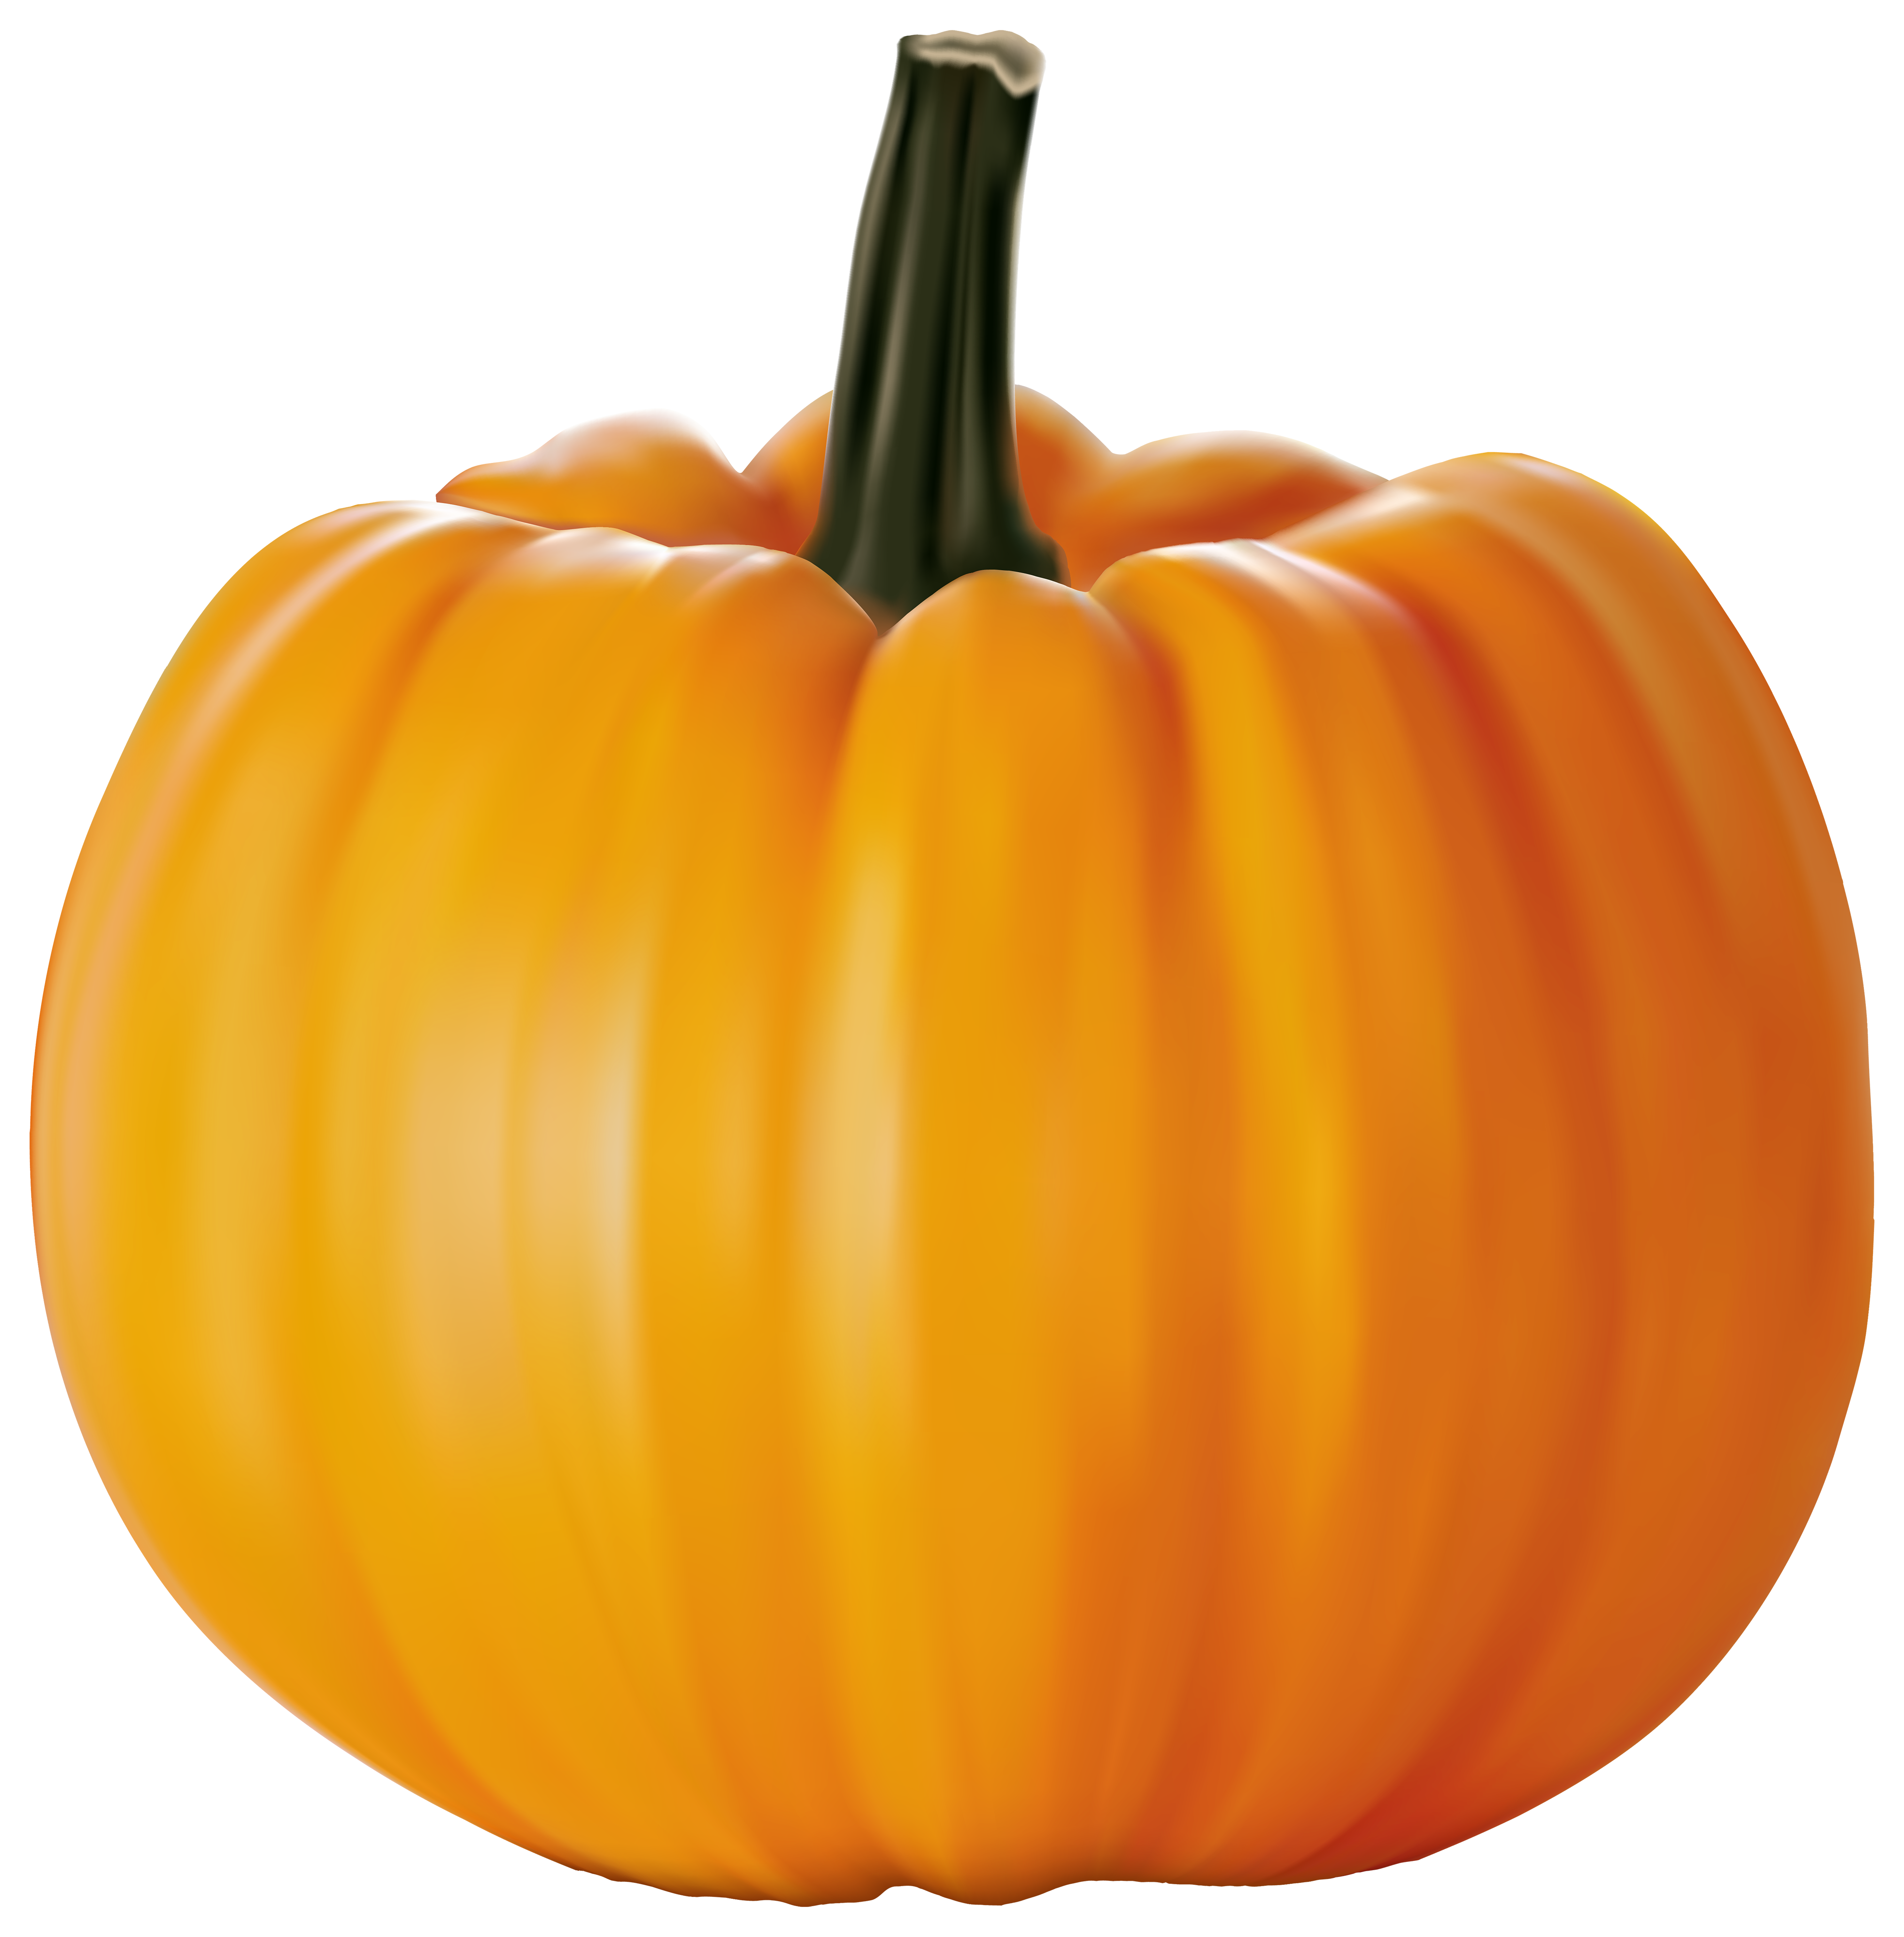 Pumpkin clipart png. Image gallery yopriceville high